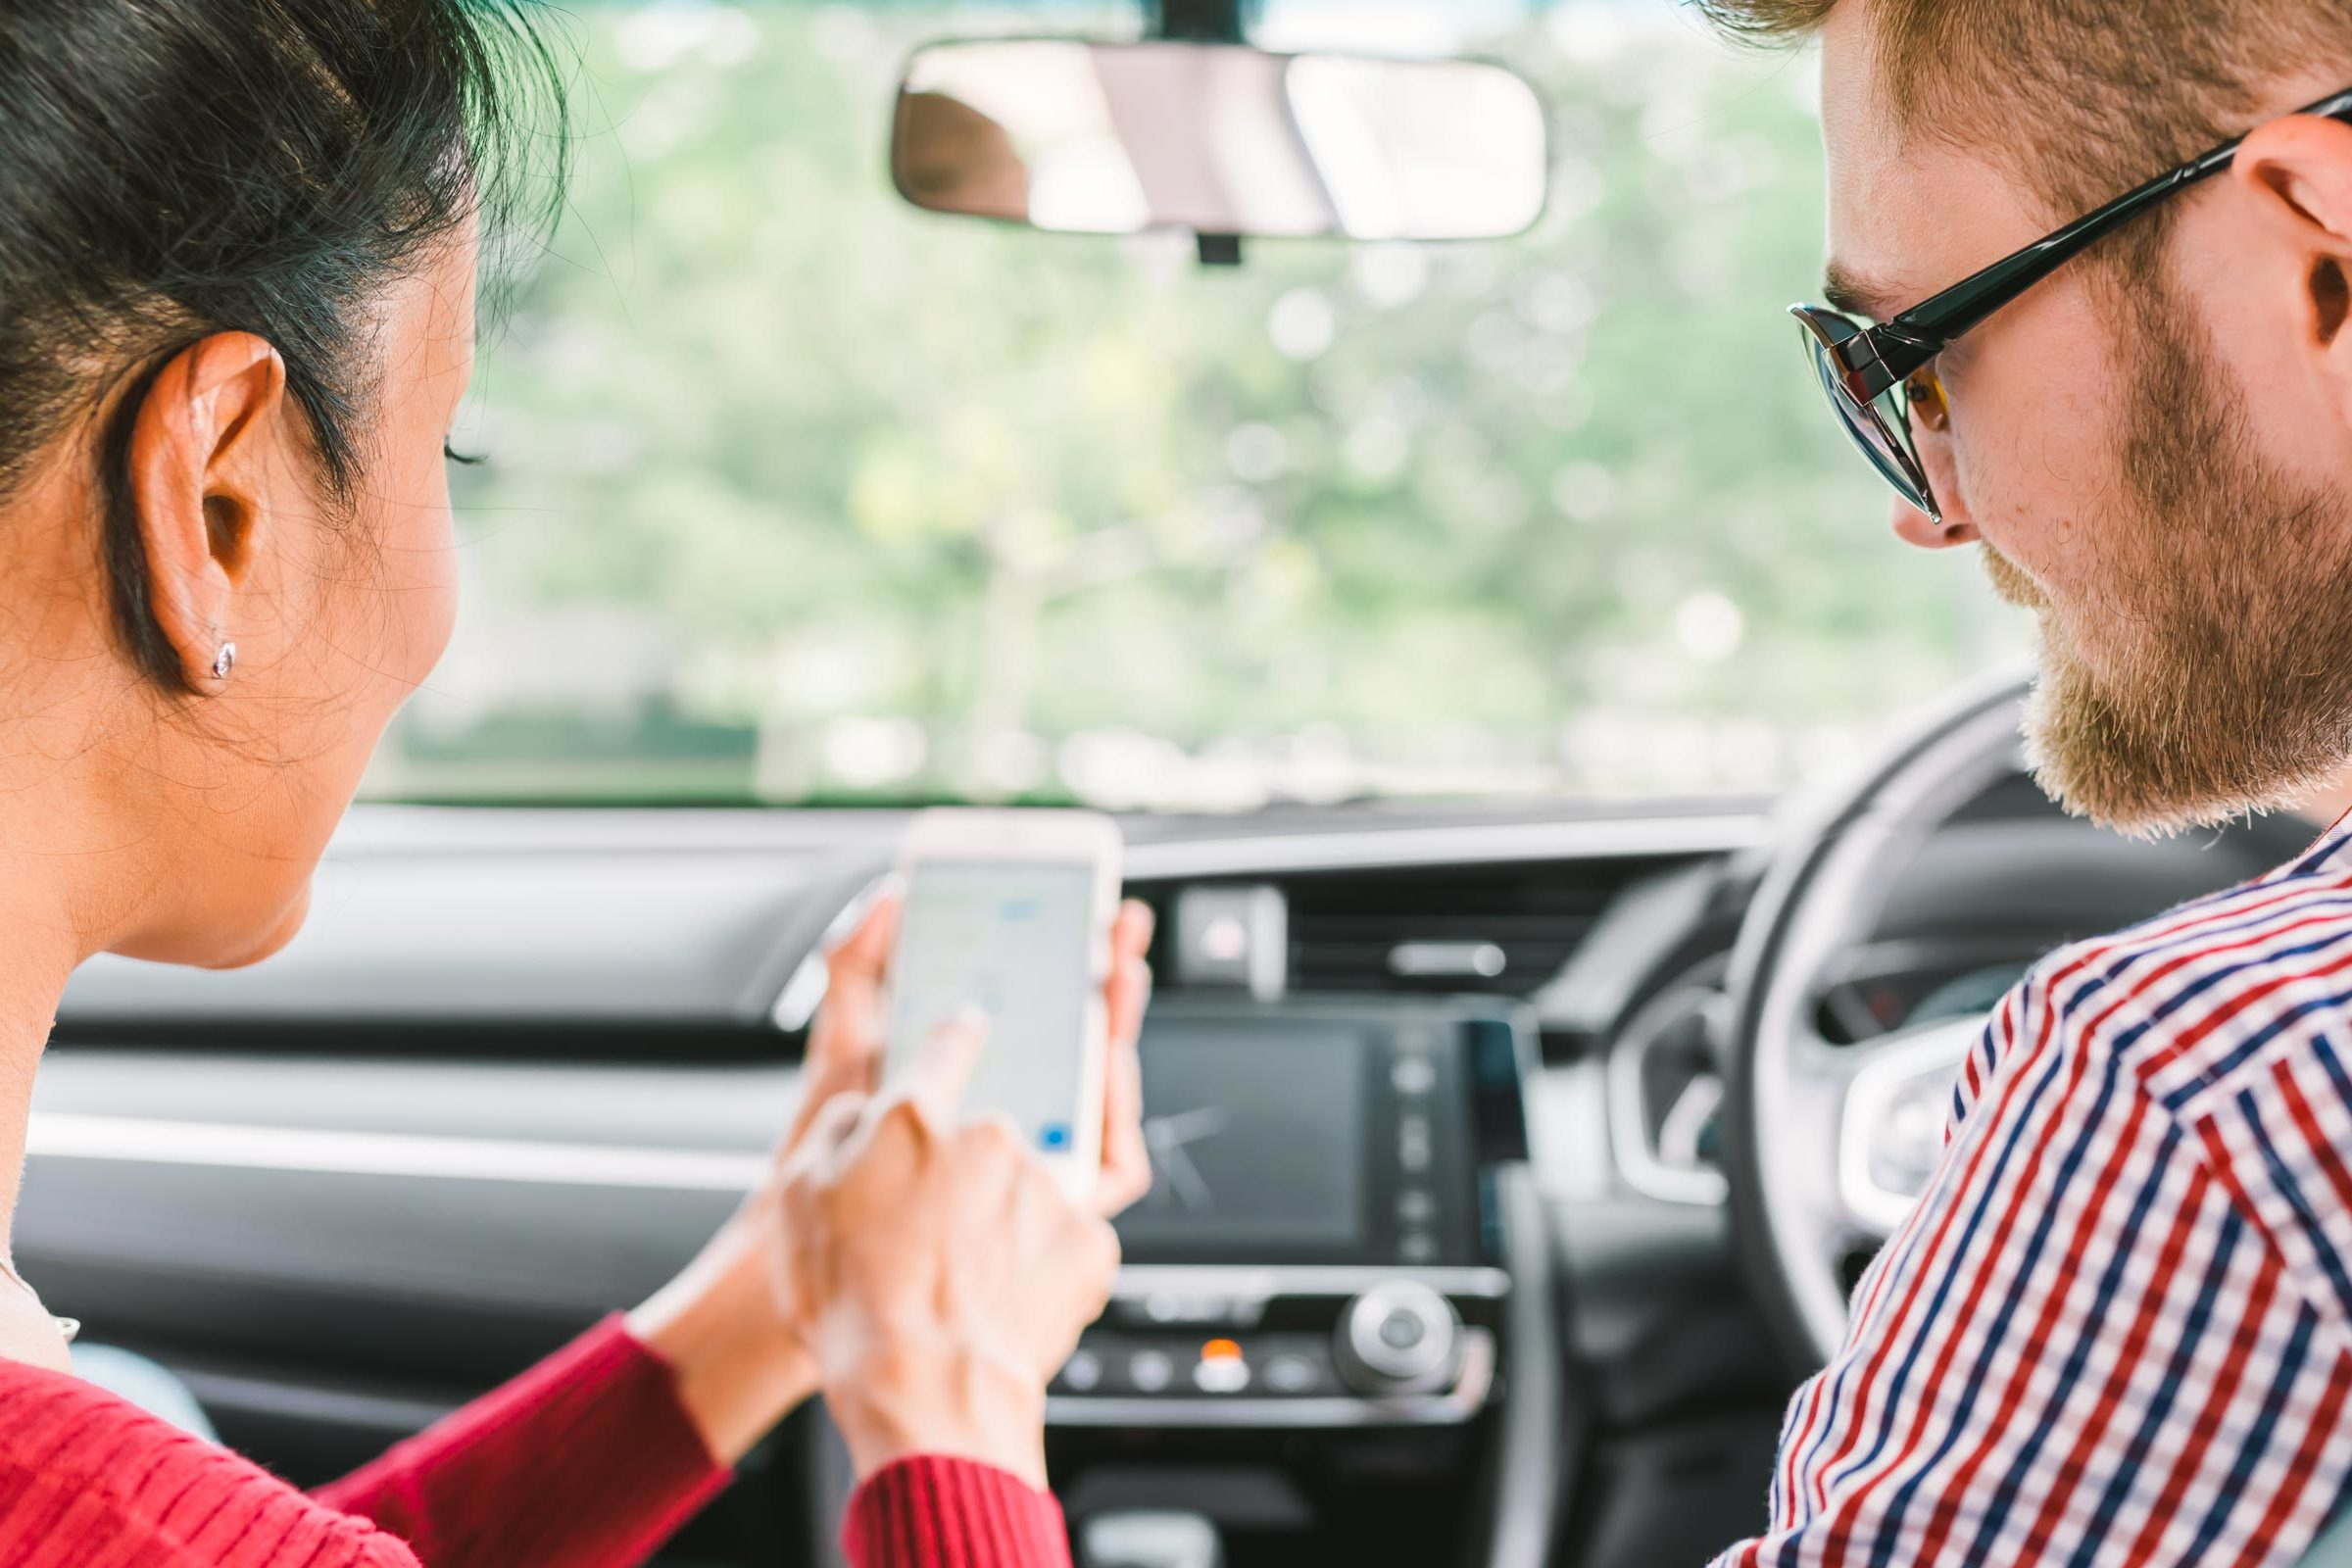 Two people in a car looking at a phone